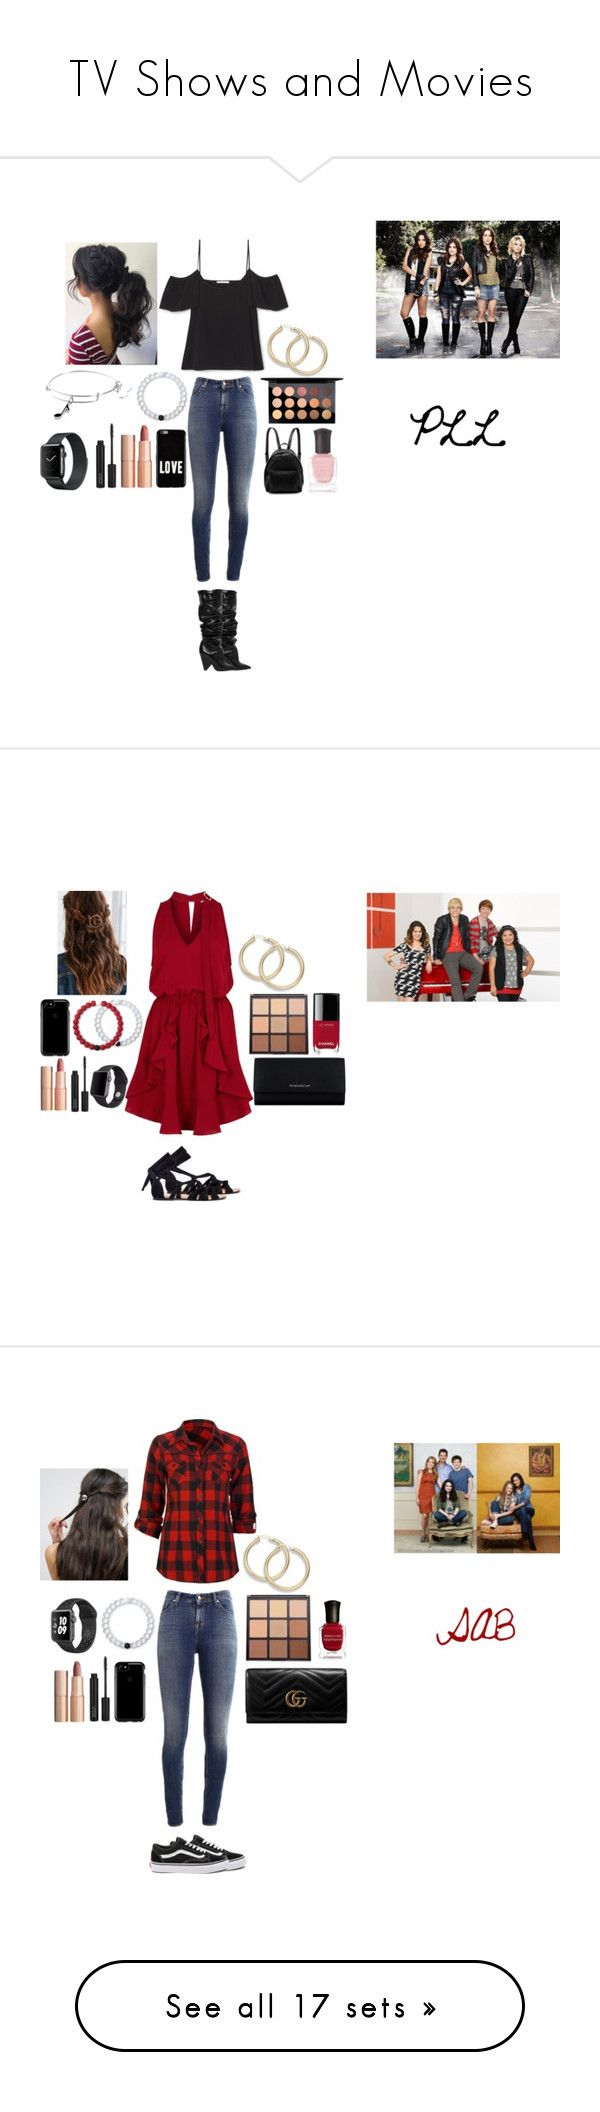 """""""TV Shows and Movies"""" by mermaid-princess-loves-music ❤ liked on Polyvore featuring Supra, MAC Cosmetics, Charlotte Tilbury, Givenchy, Yves Saint Laurent, Alex and Ani, Lokai, STELLA McCARTNEY, Deborah Lippmann and PrettyLittleLiars"""